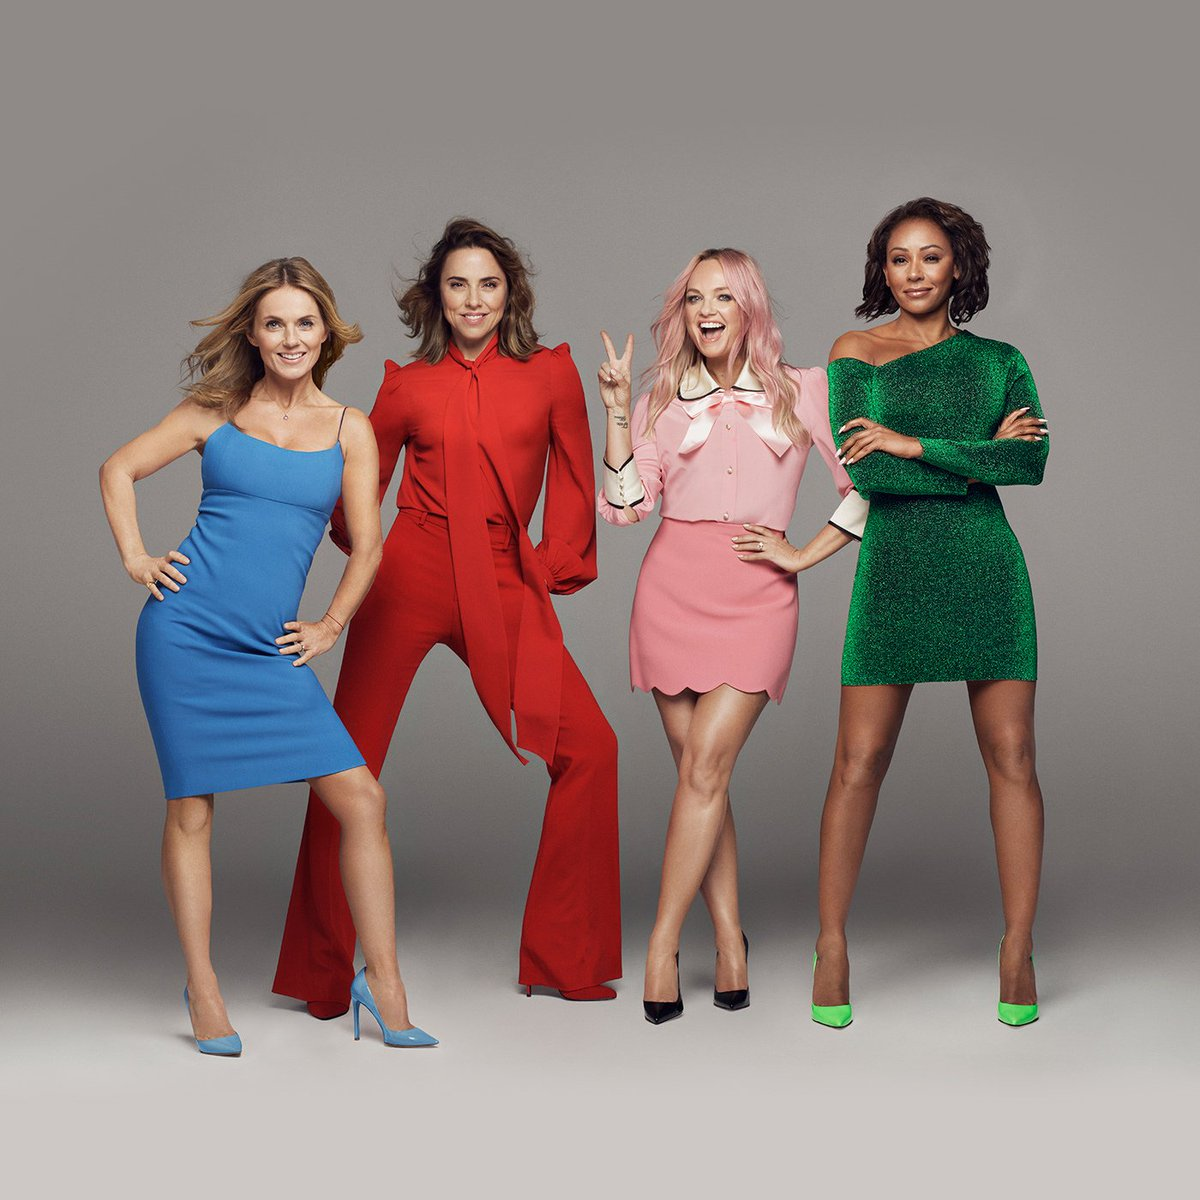 RT @spicegirls: Spice World 2019 https://t.co/ou2I9J79T9